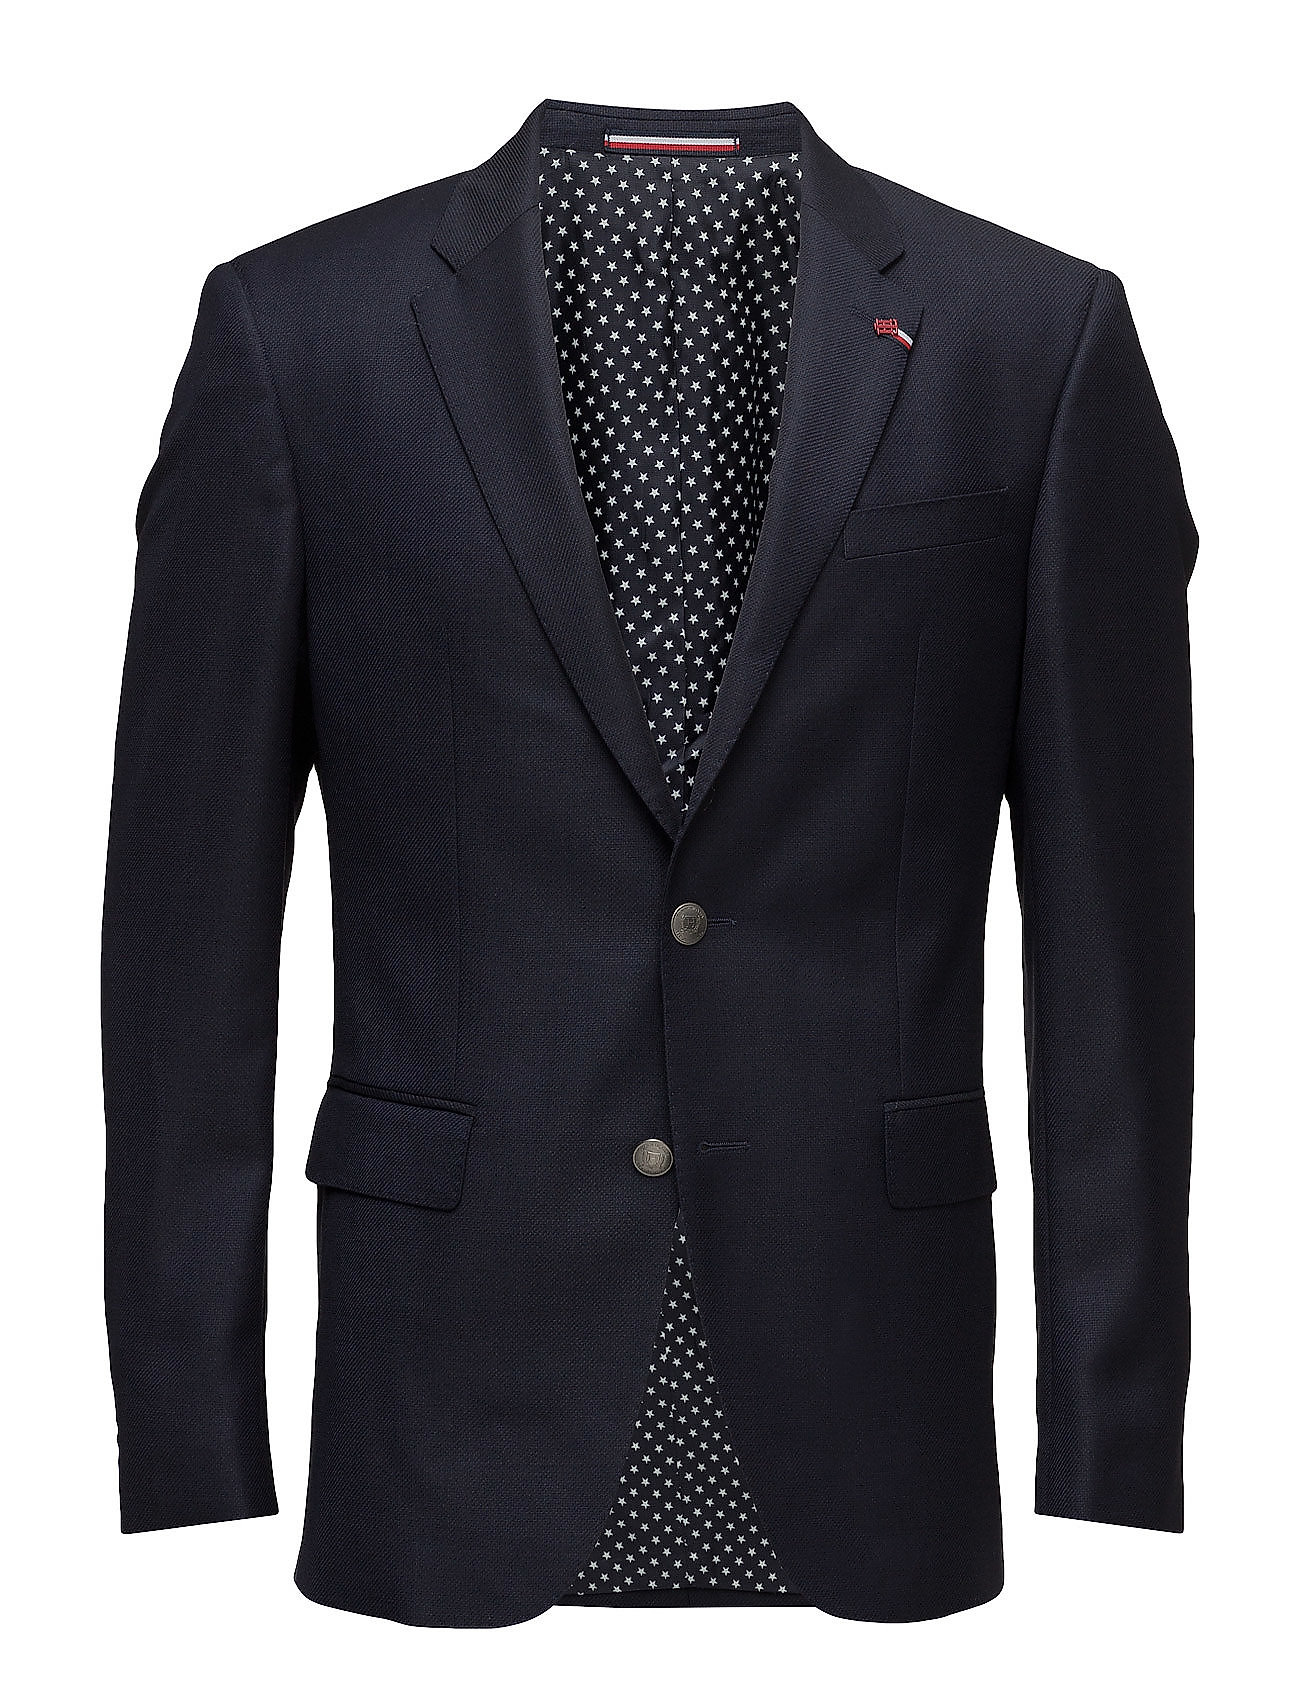 Tommy Hilfiger Tailored NW AMERICA ICON NMR-2FP BLZSLD9901 - 429